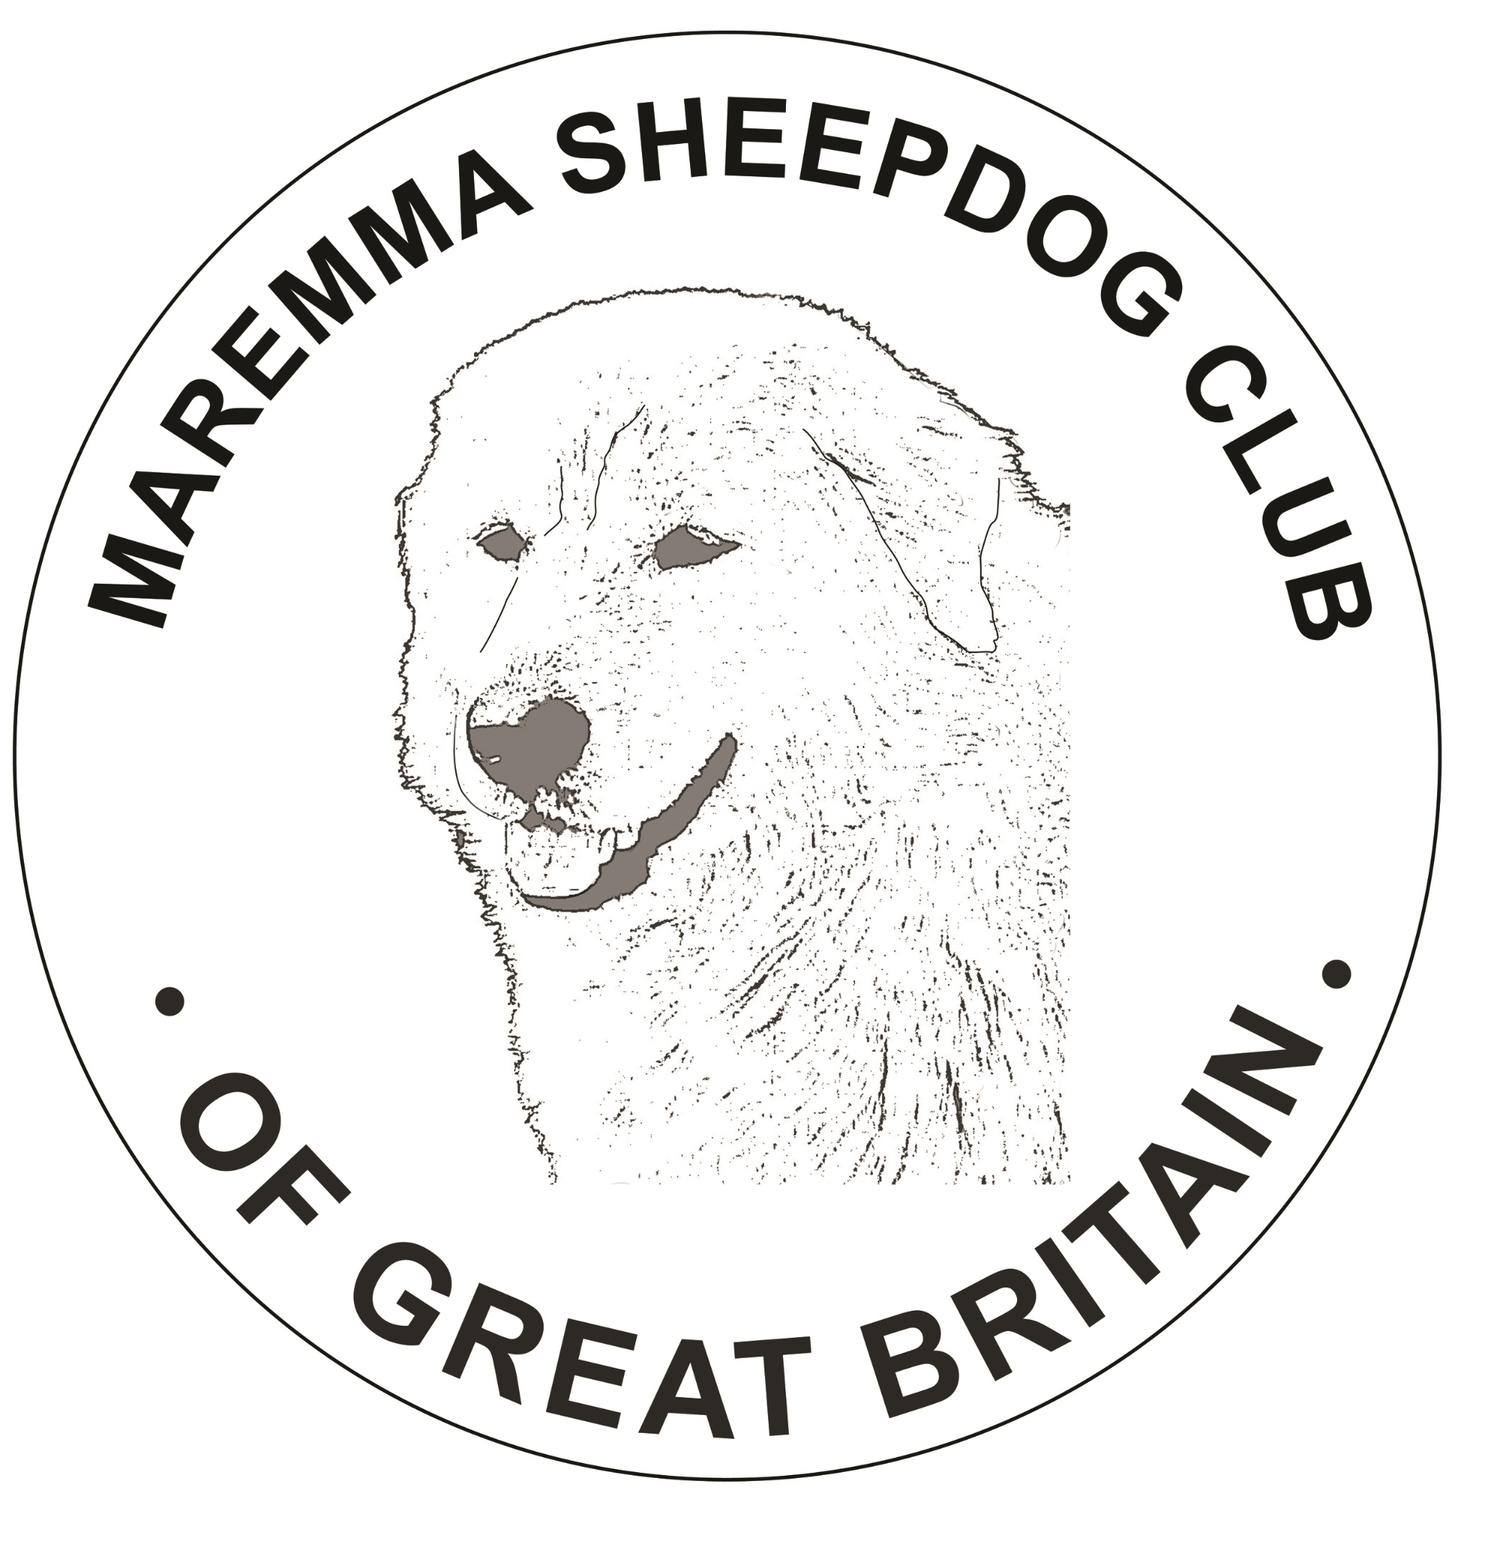 Maremma Sheepdog Club of Great Britain